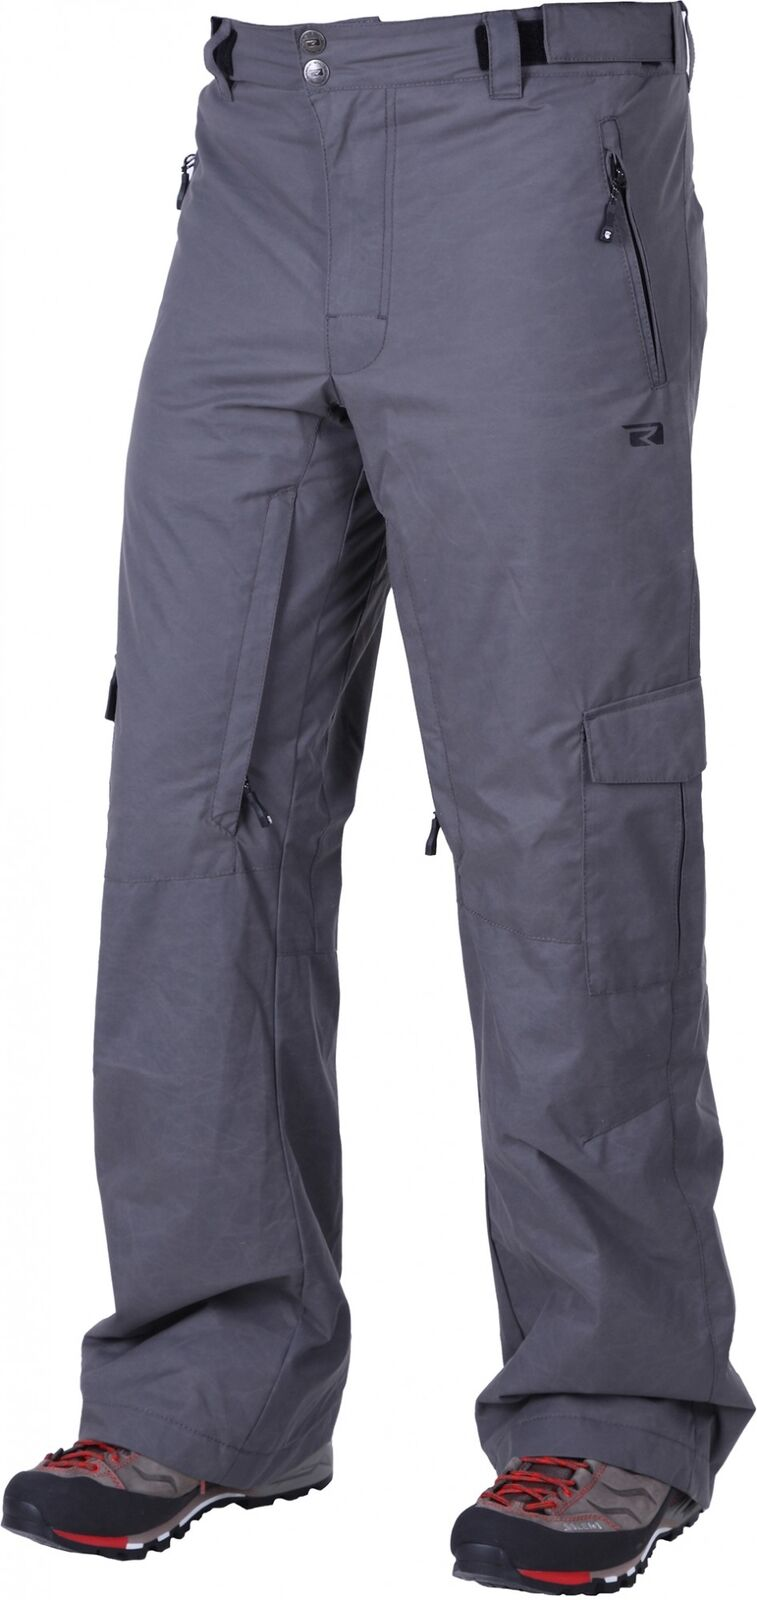 Rehall Ski Pants Rider-R Snowpants Men's Snowboard Trousers Winter Snow